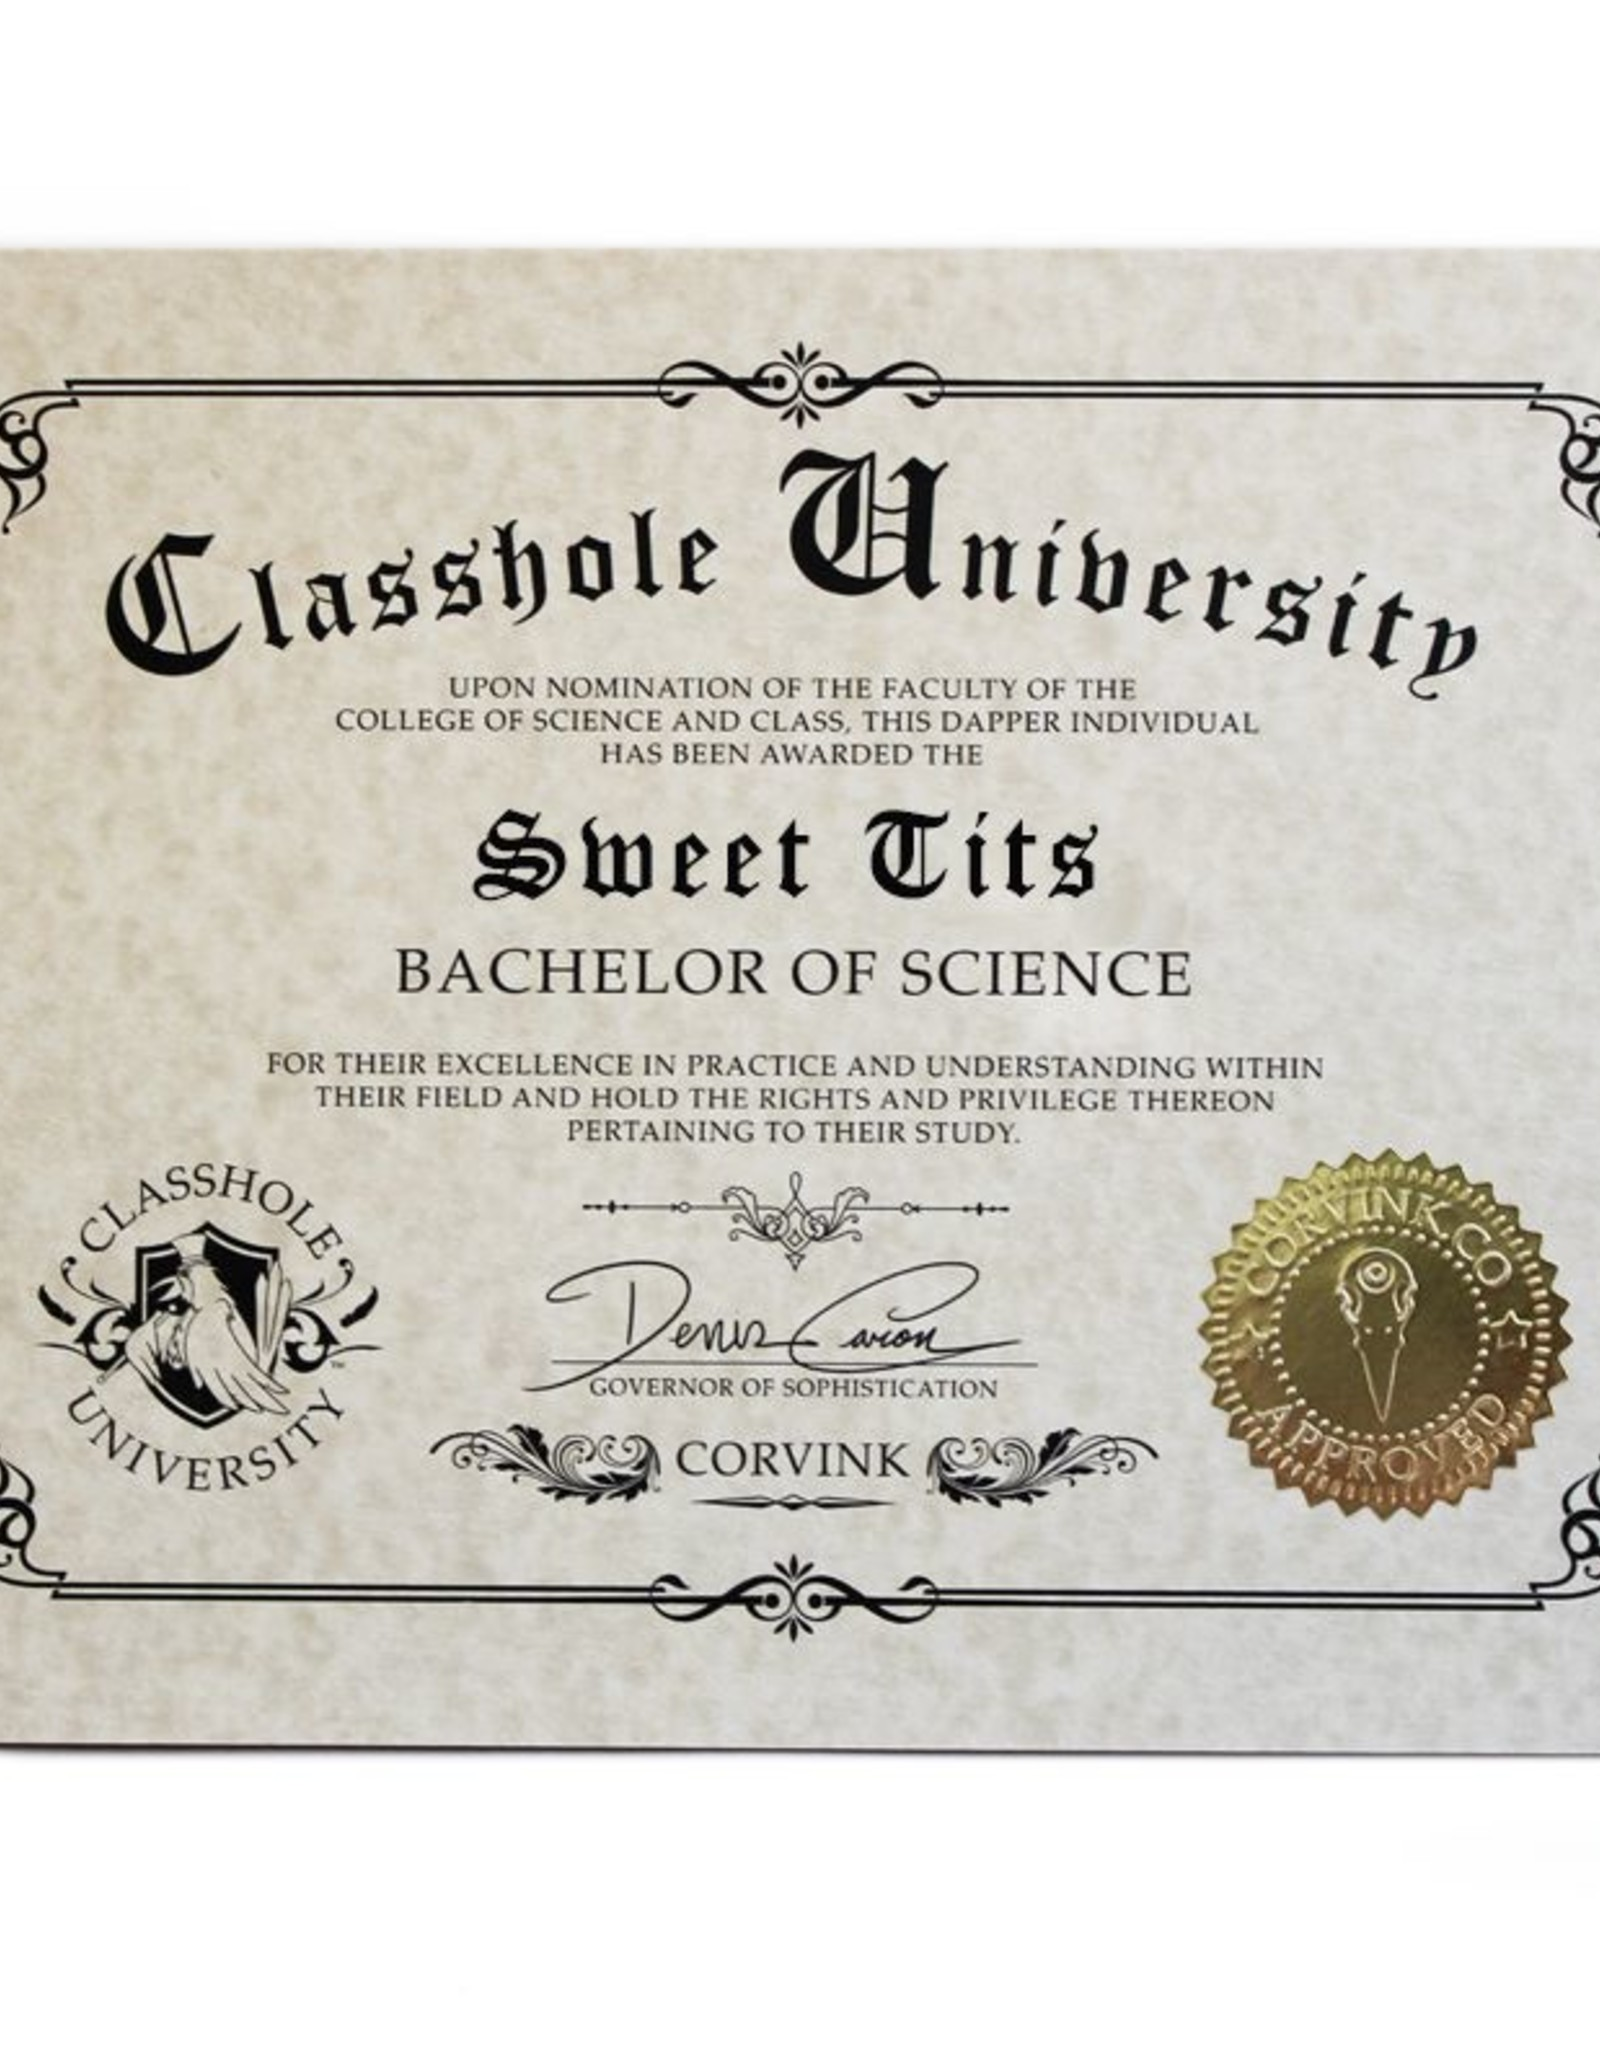 Classhole University BS Diplomas - Sweet Tits